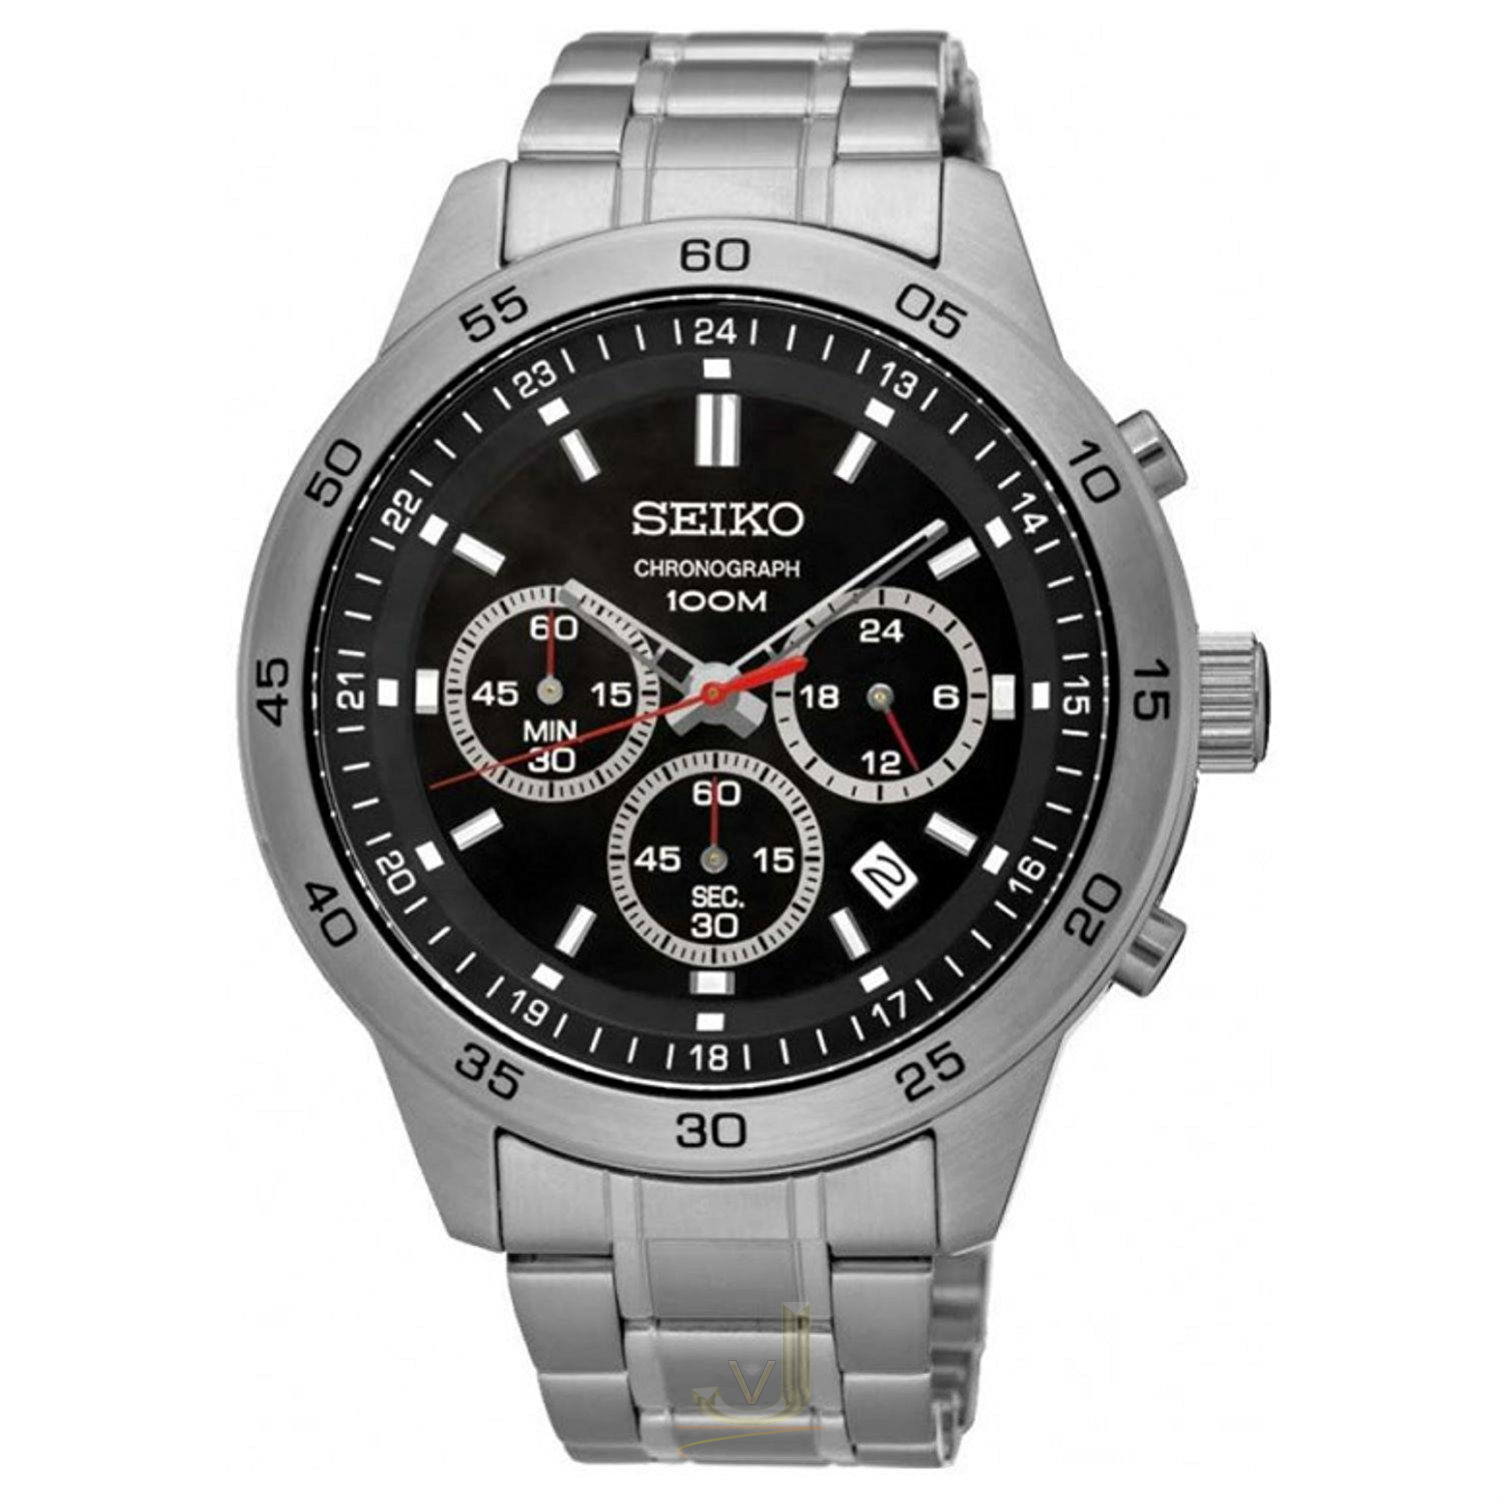 products silicon for lord to please quartz the subject seiko p stock silico watches us pm strap availability chronograph multiple htm end esupply watch sale whatsapp